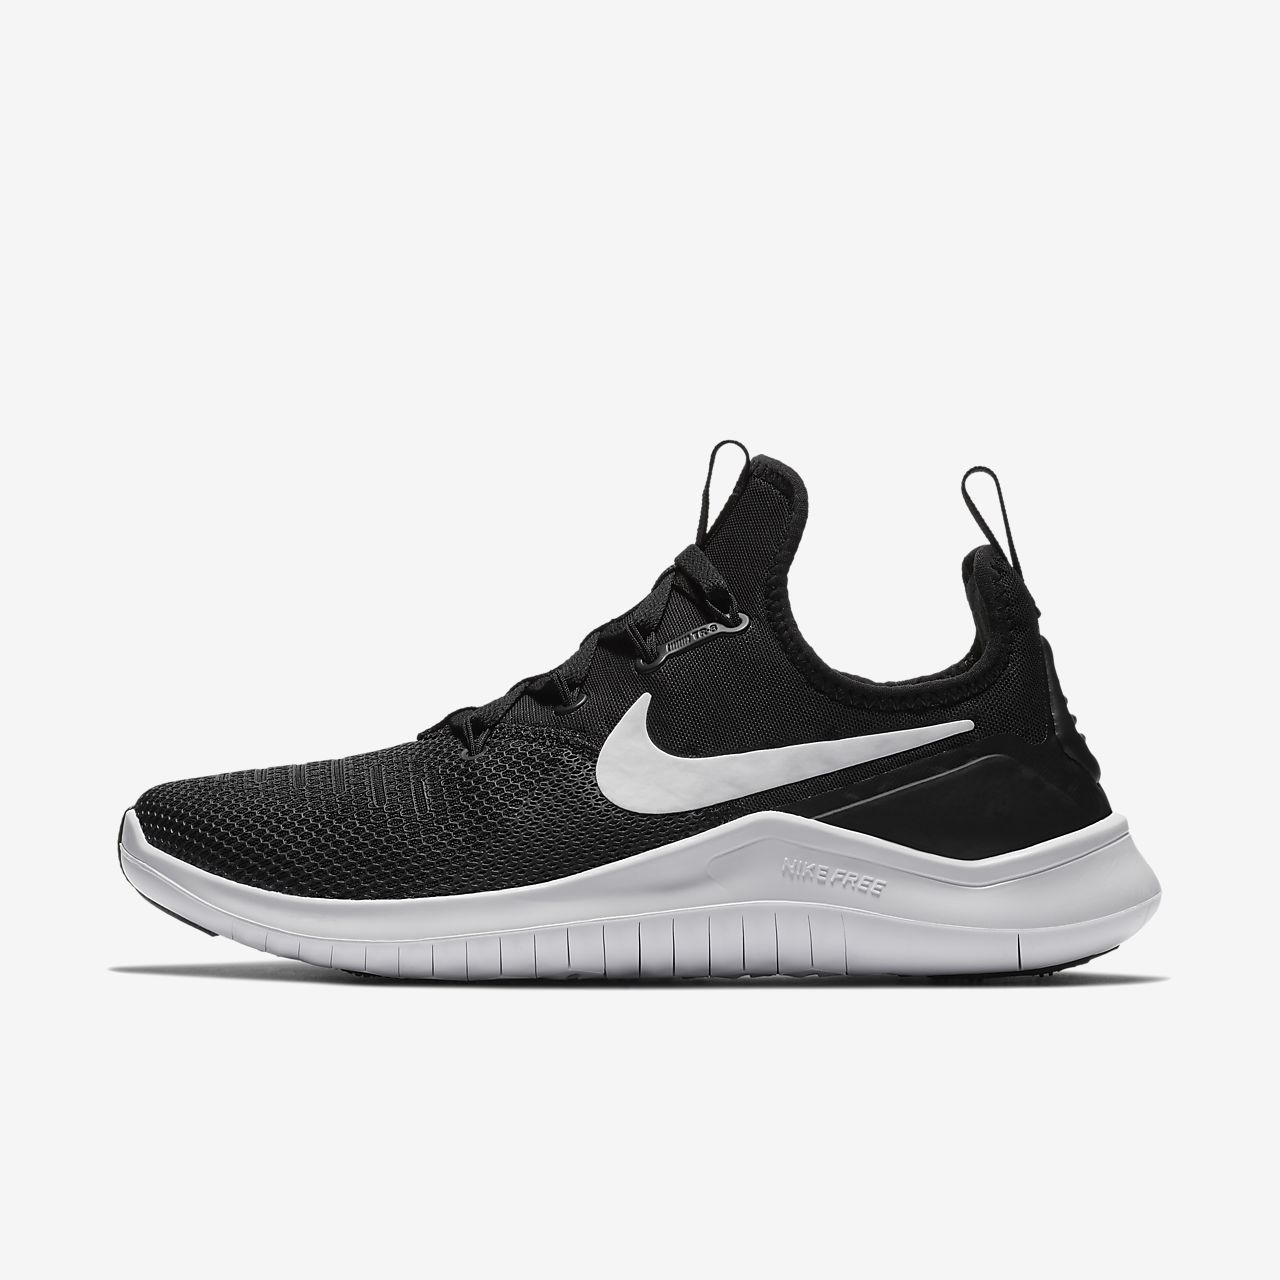 393abbe845f8 Nike Free TR8 Women s Gym HIIT Cross Training Shoe. Nike.com AU